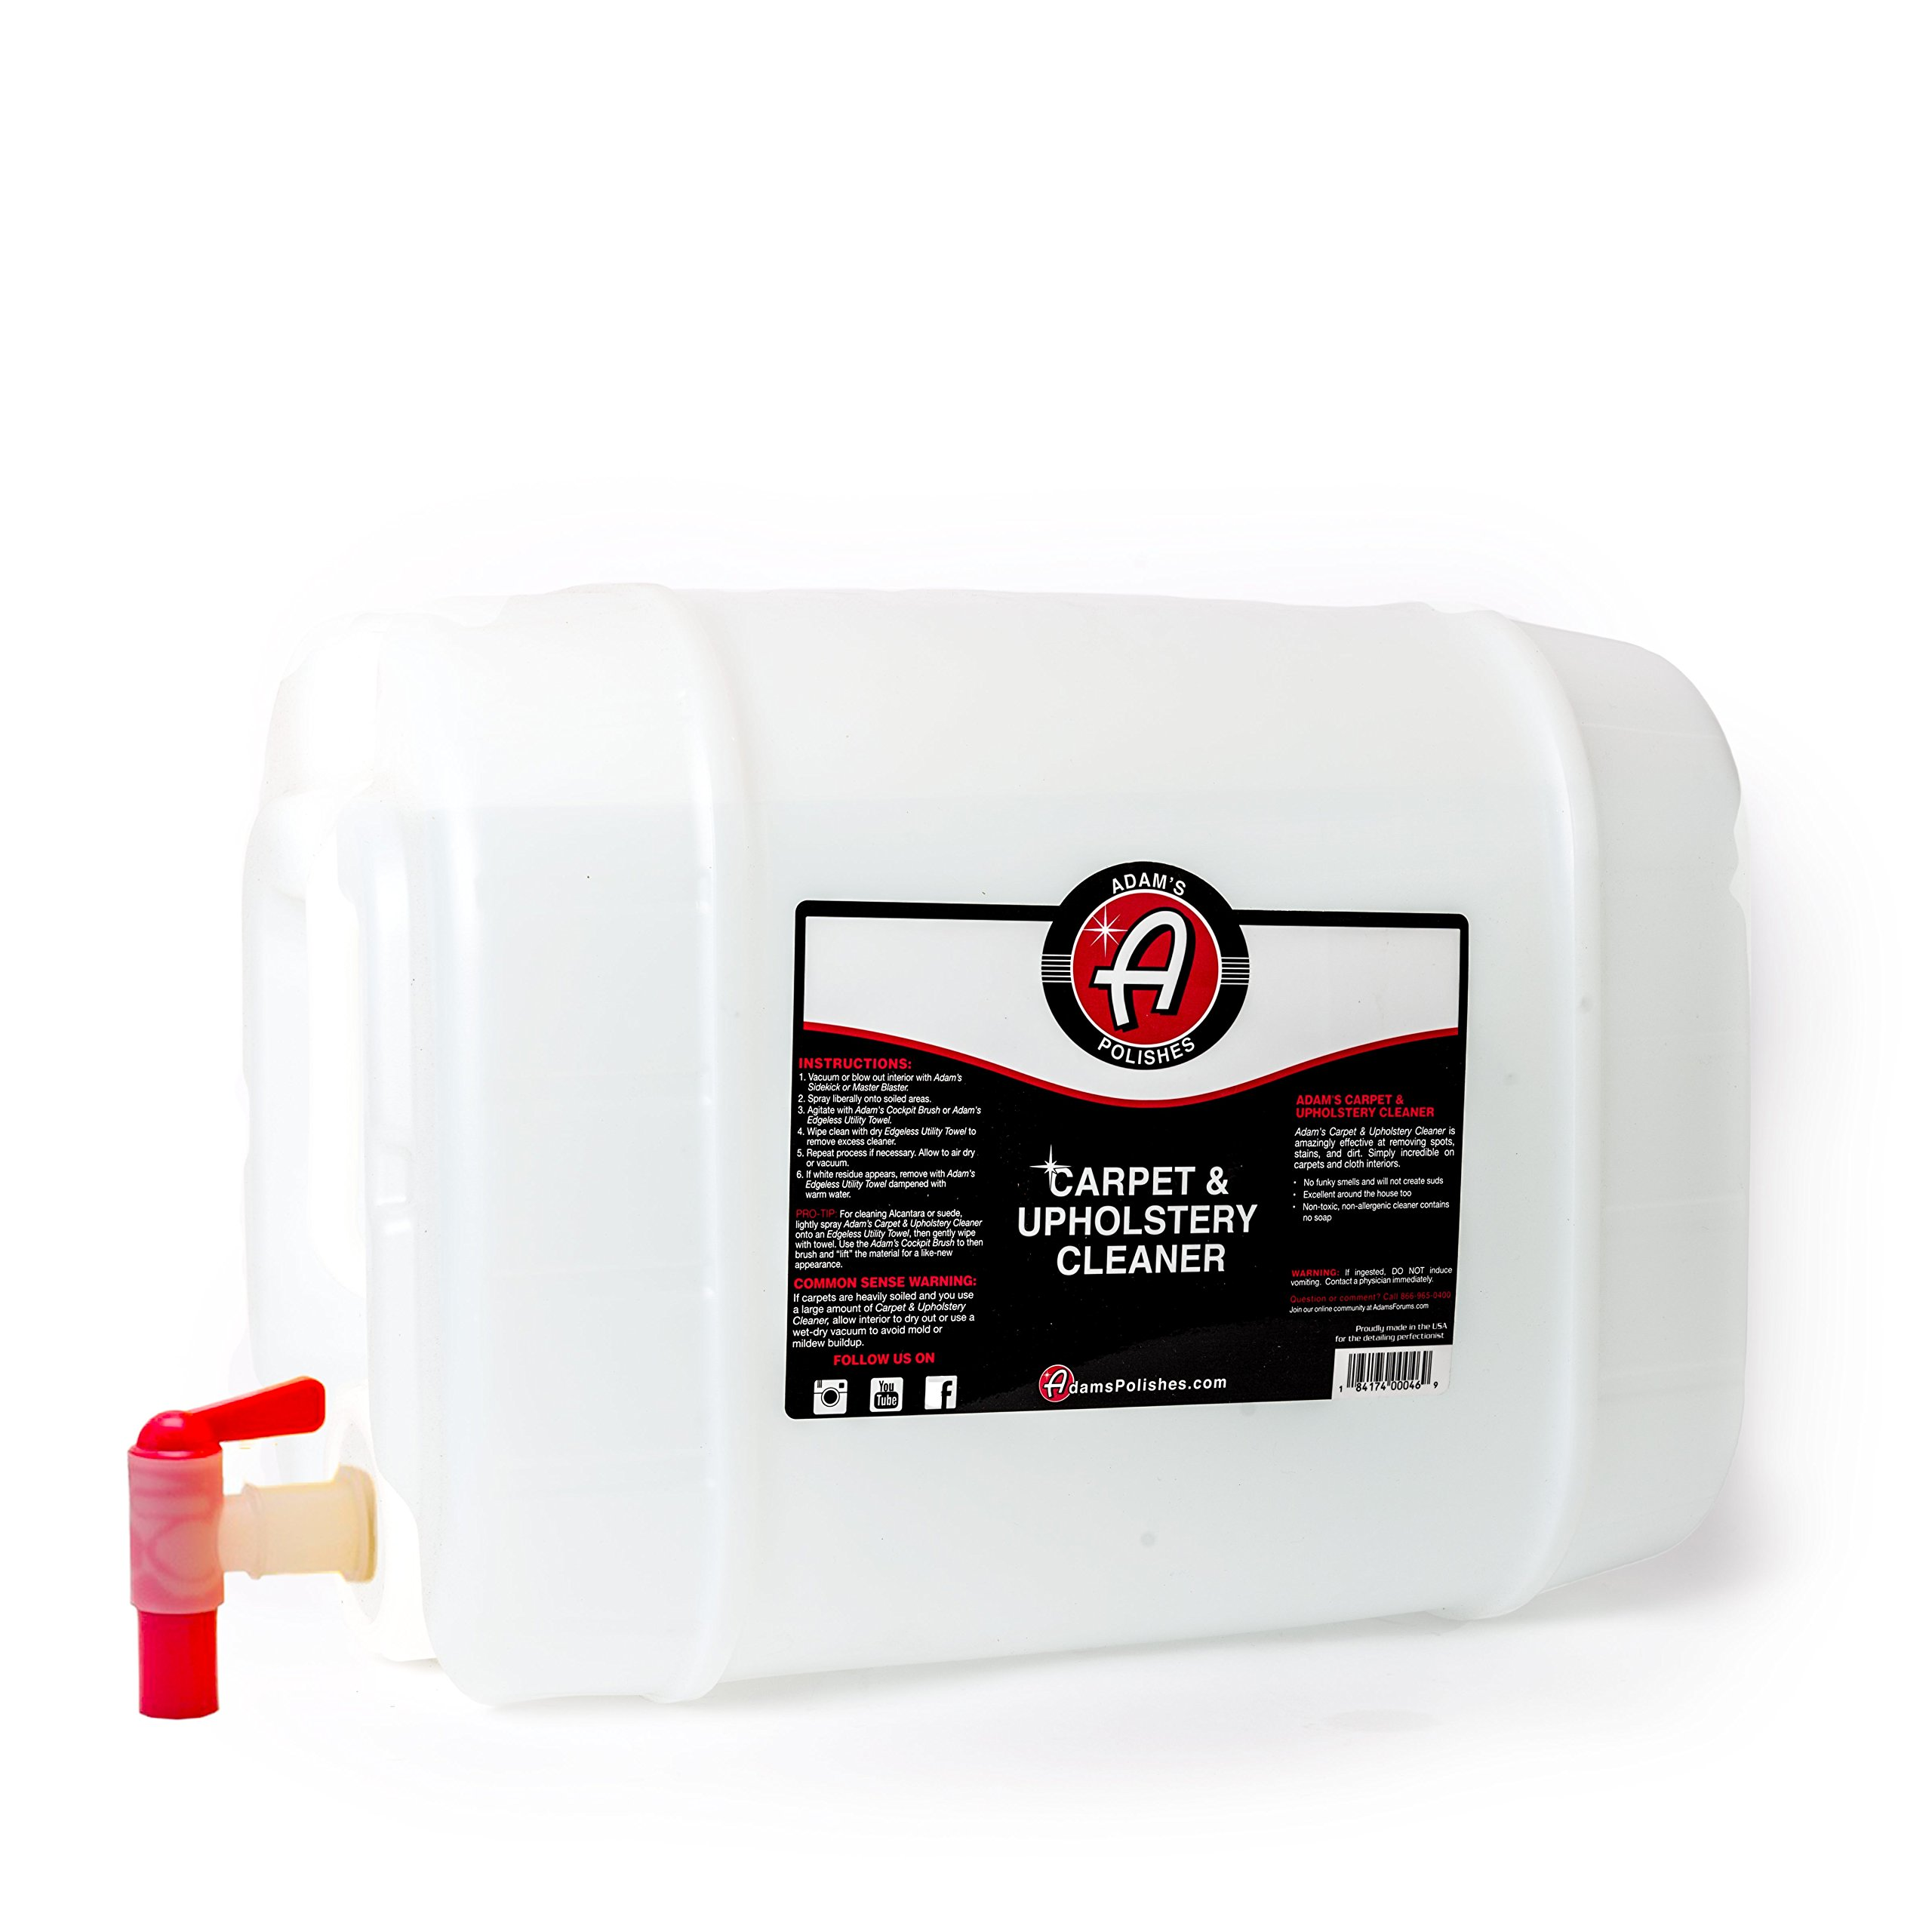 Adam's Carpet & Upholstery Cleaner - Easy to Use and Effective on Even The Worst Stains - Safe, Non-Toxic and Hypoallergenic (5 Gallon)